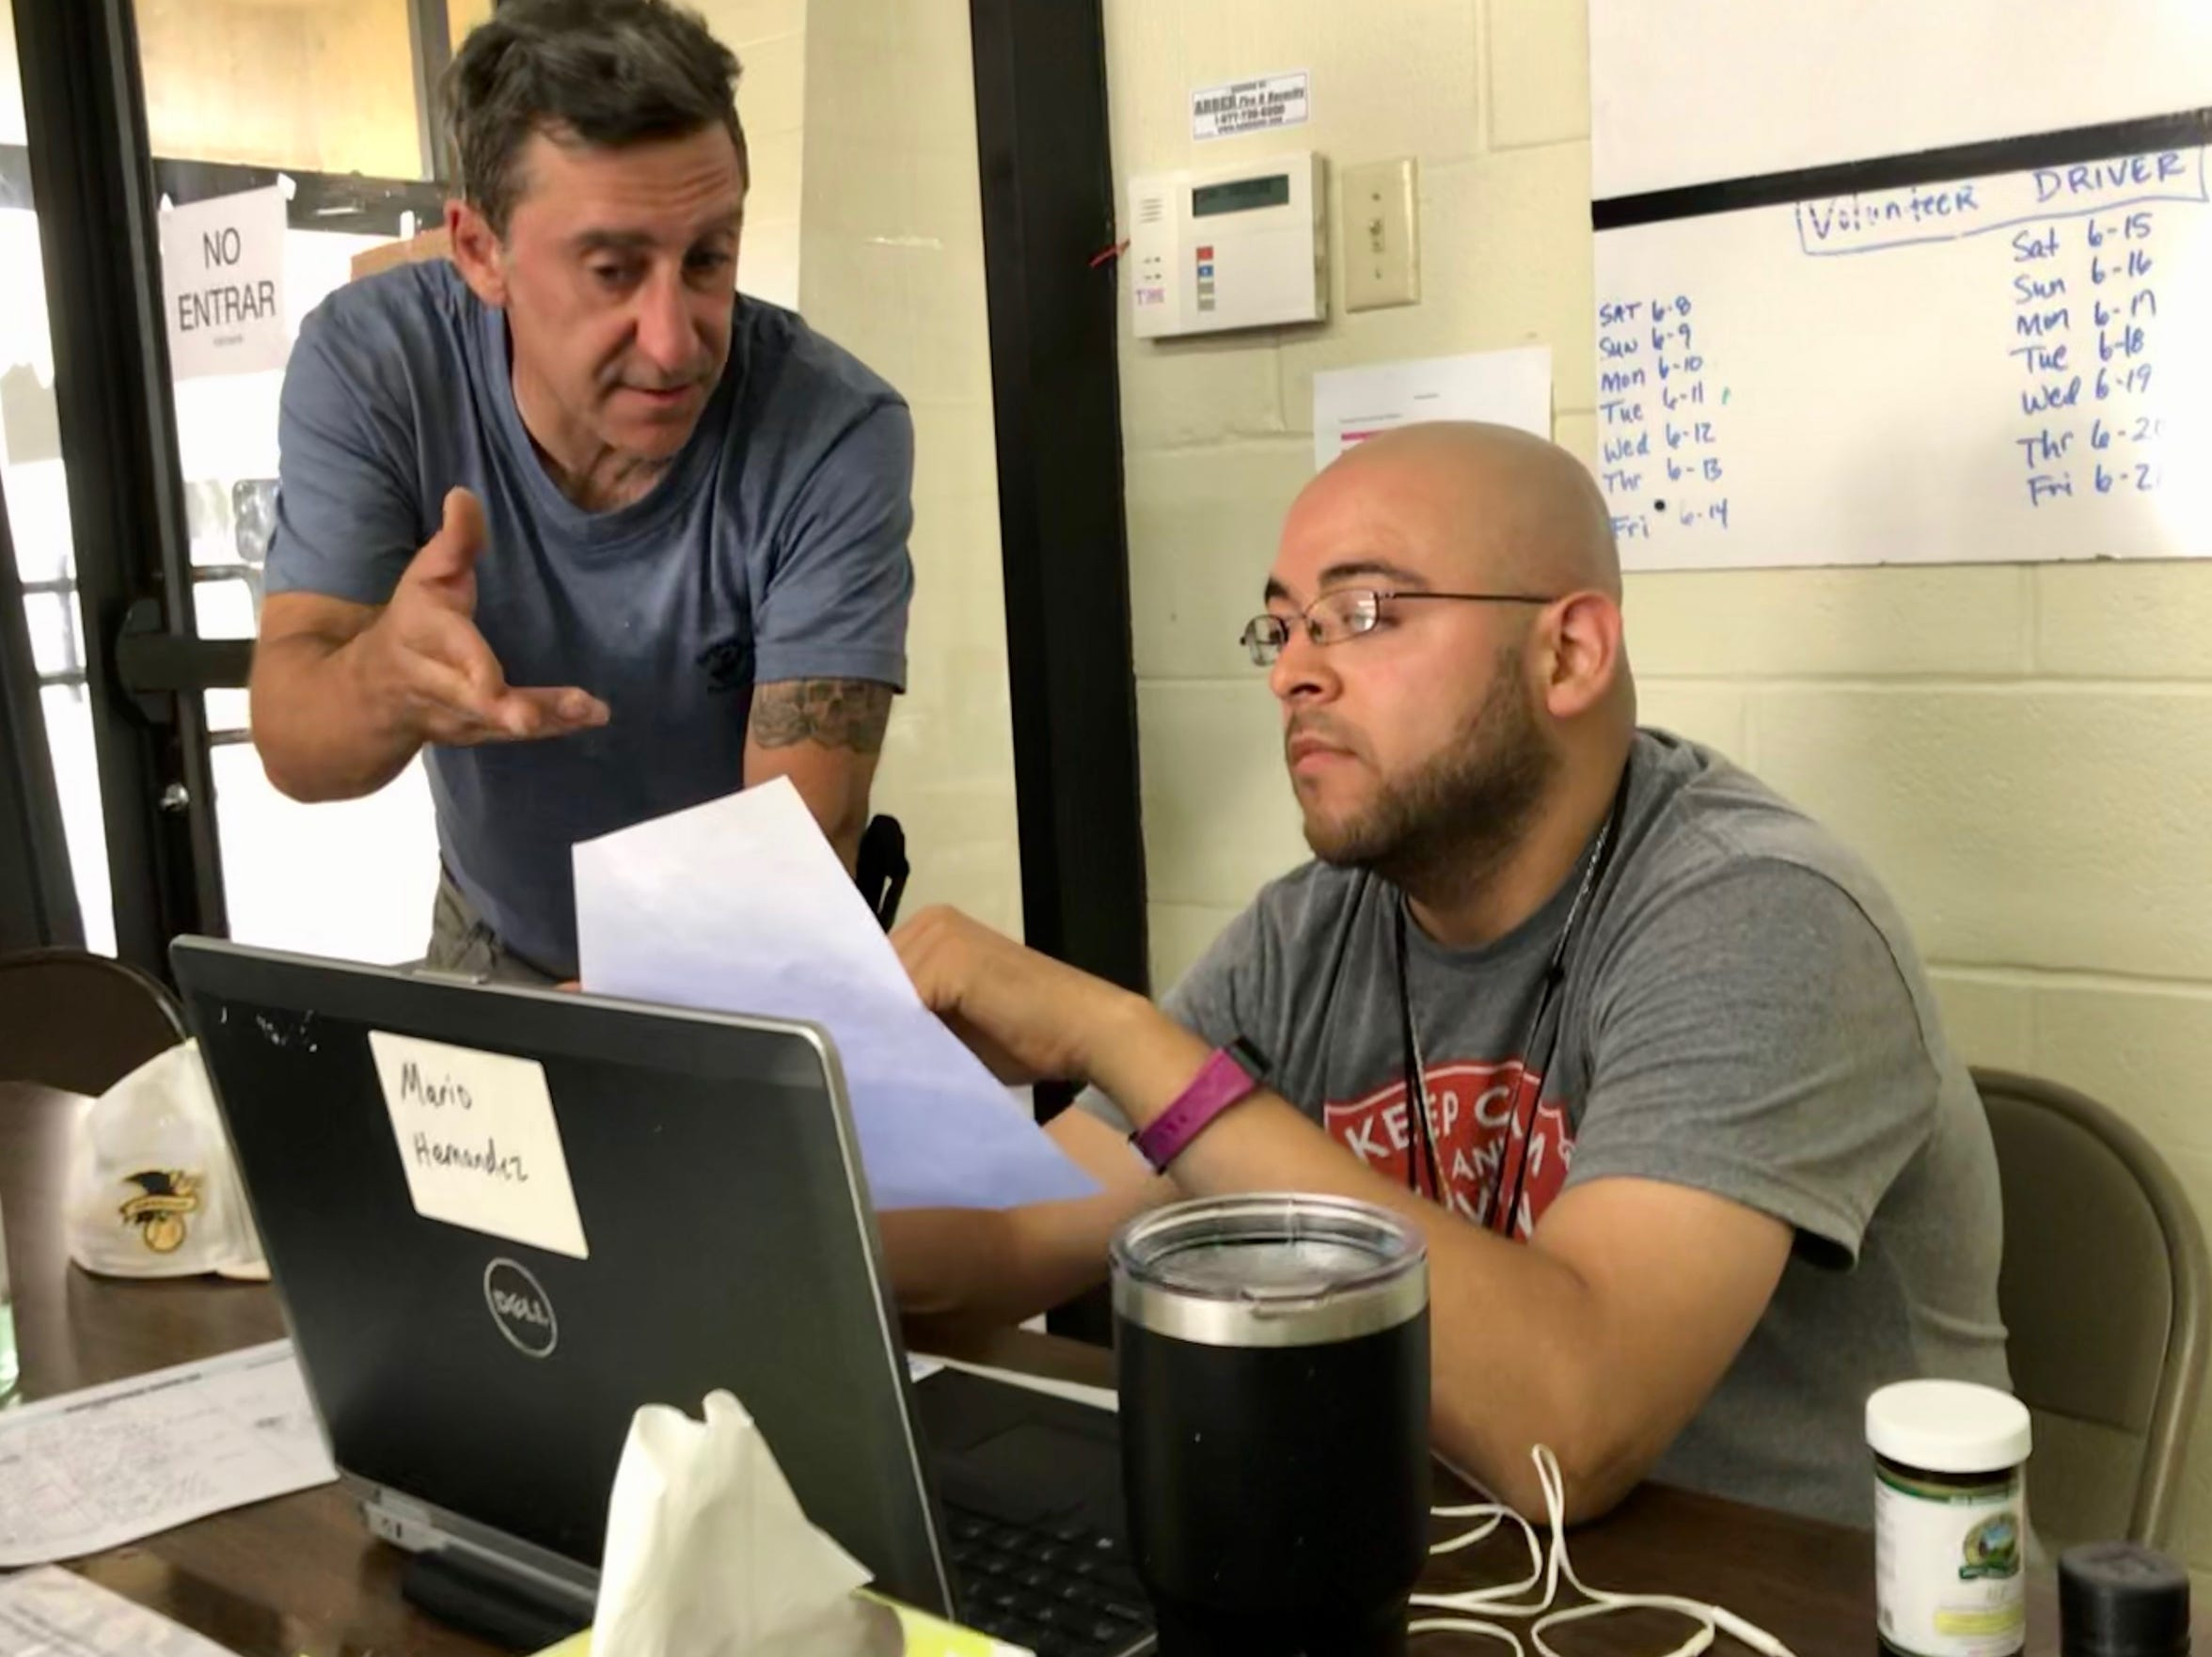 Volunteers Paul Acres (Left) and Mario Hernandez (Right) review documents to help arrange travel for migrant families arriving at the Val Verde Border Humanitarian Coalition Center in Del Rio, Texas. June 19, 2019.